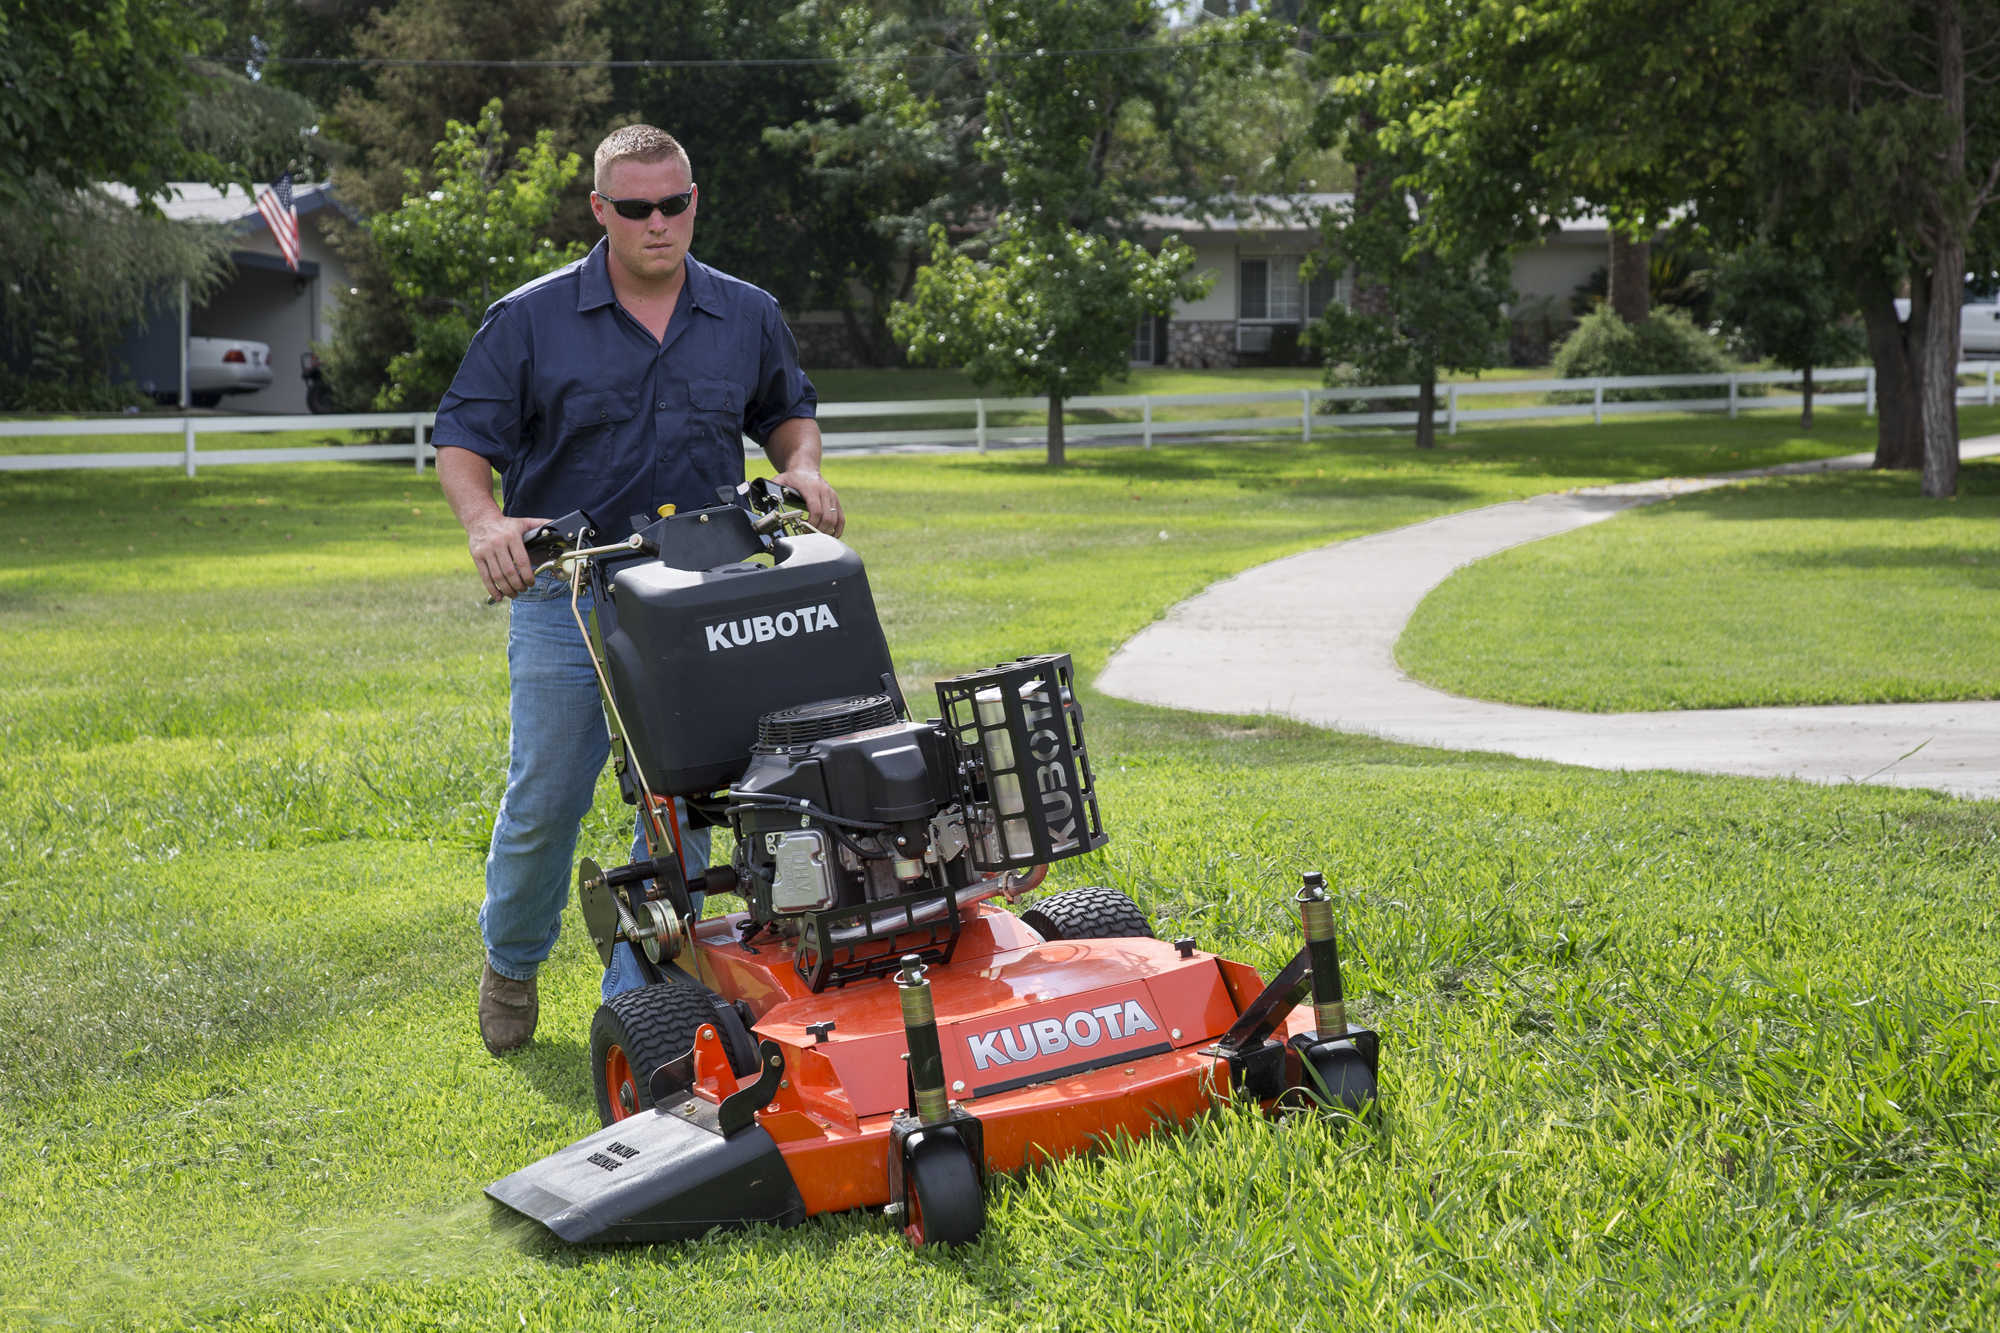 Kubota Introduces Commercial Walk Behind Mowers And All New Zd